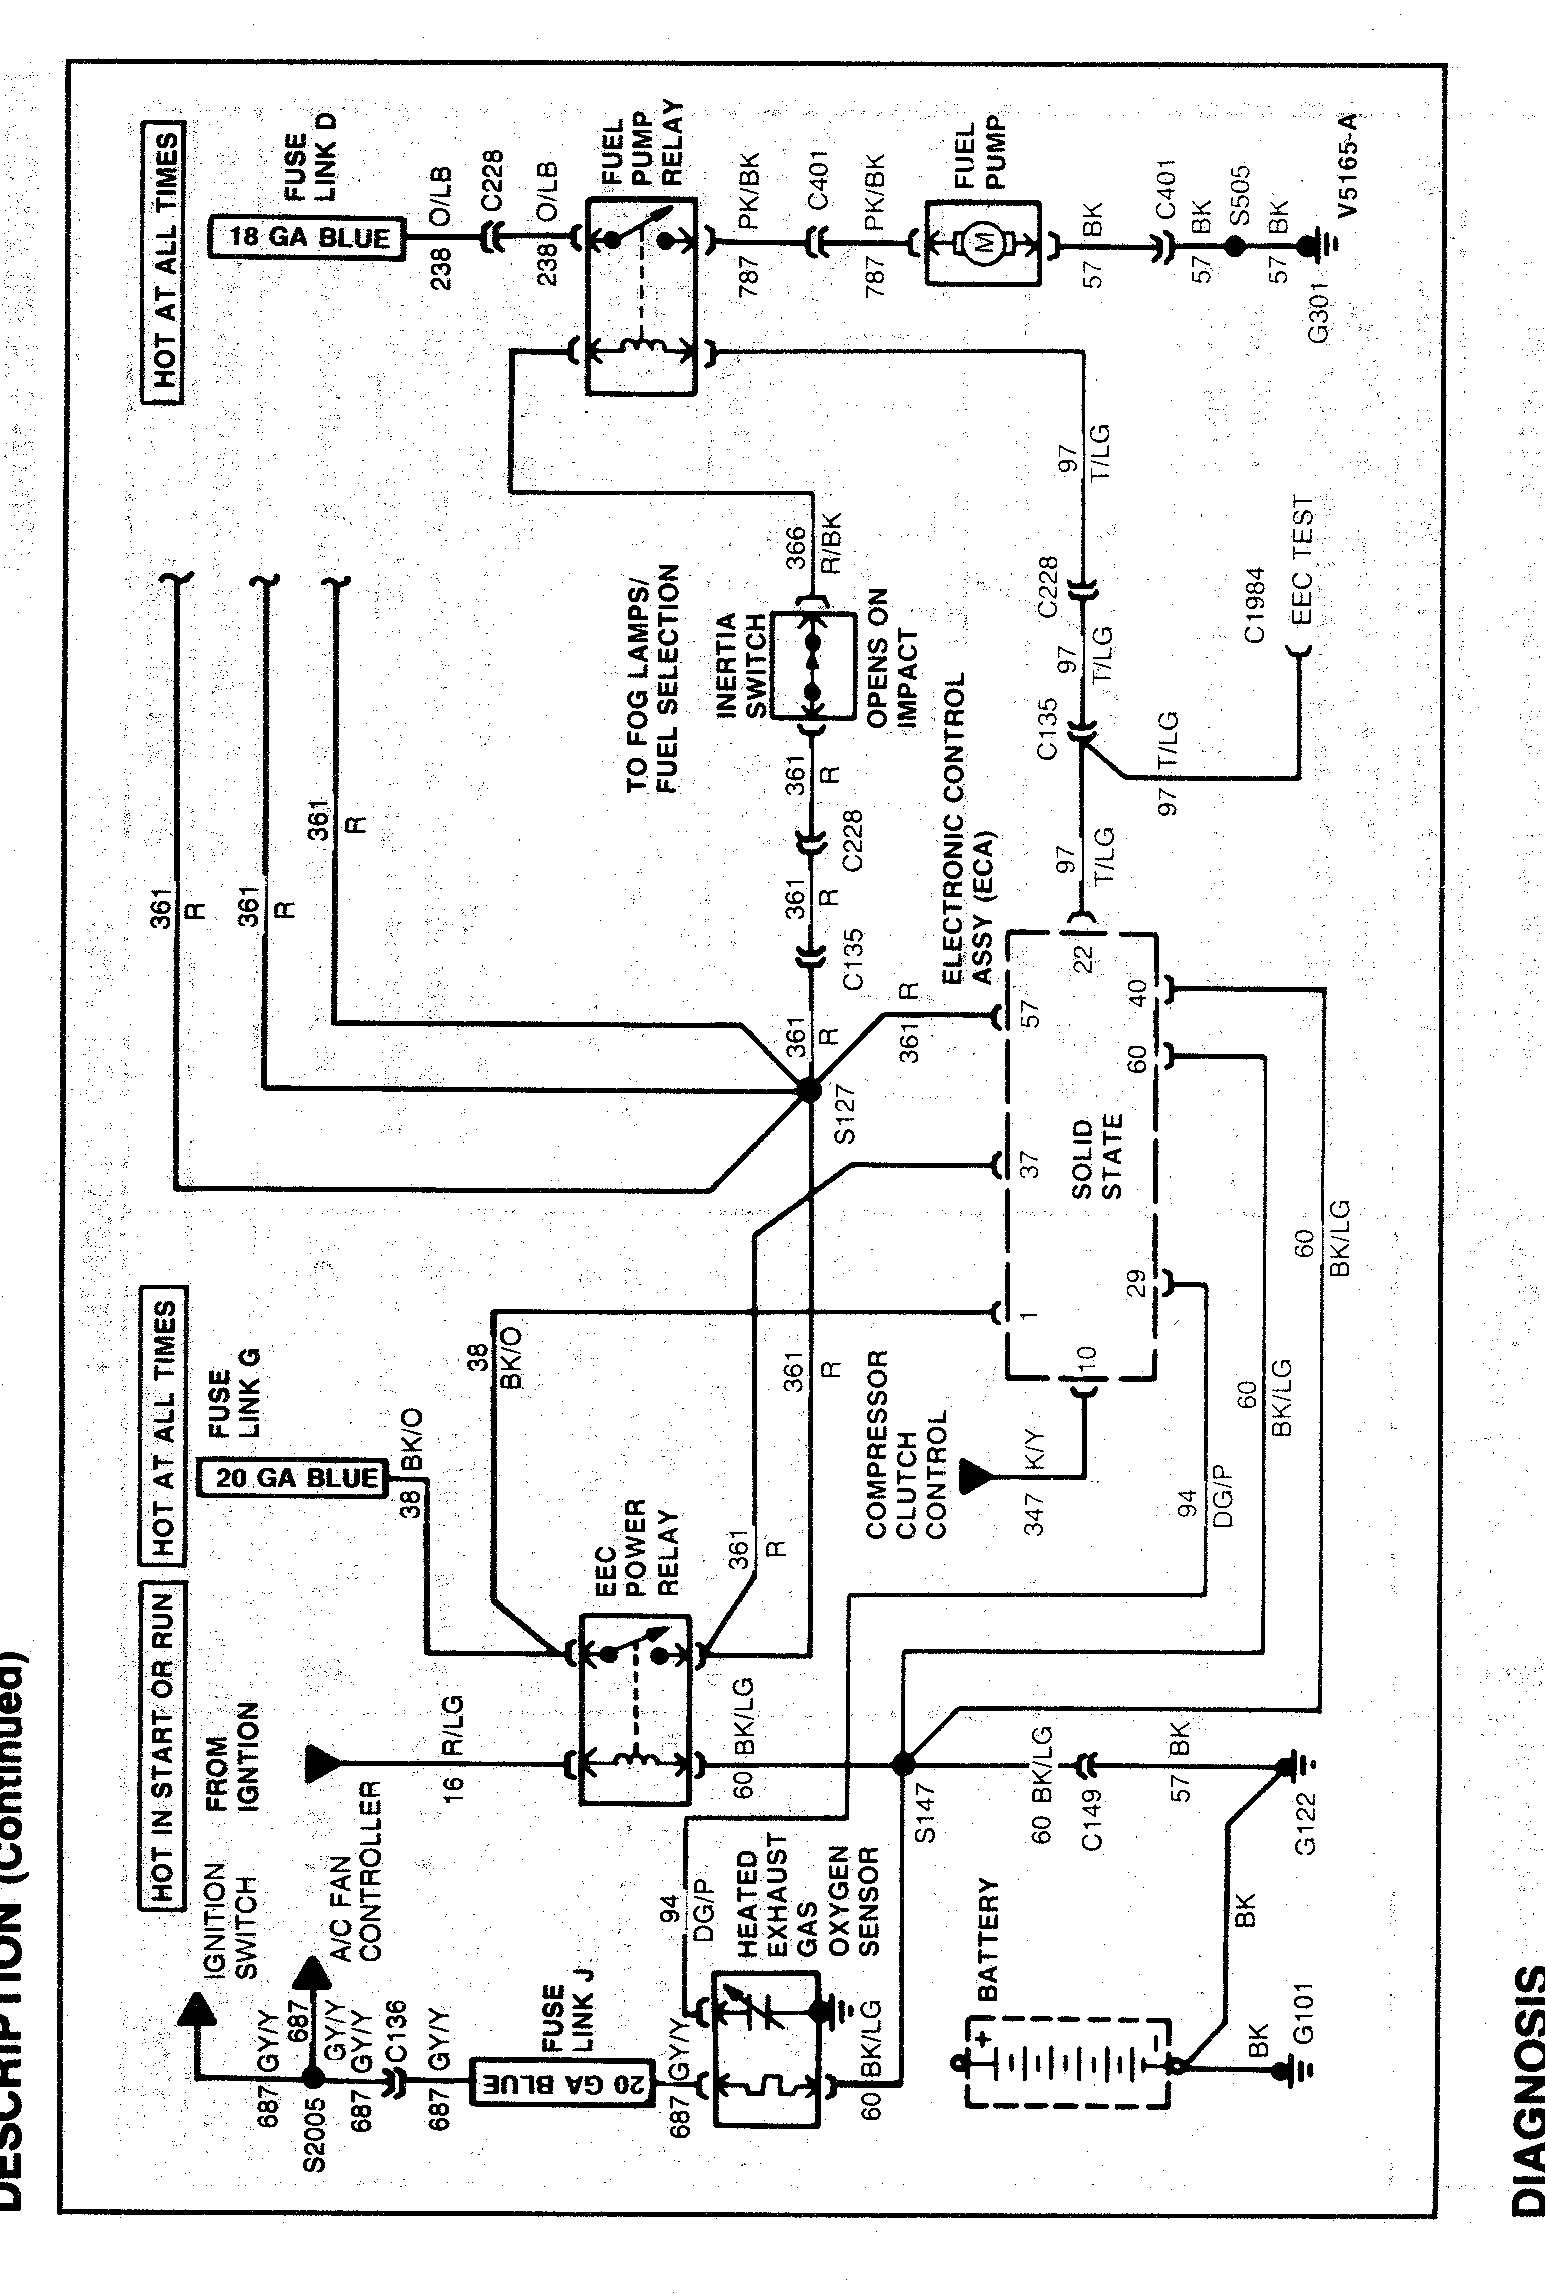 wiring diagram 2001 gillig phantom